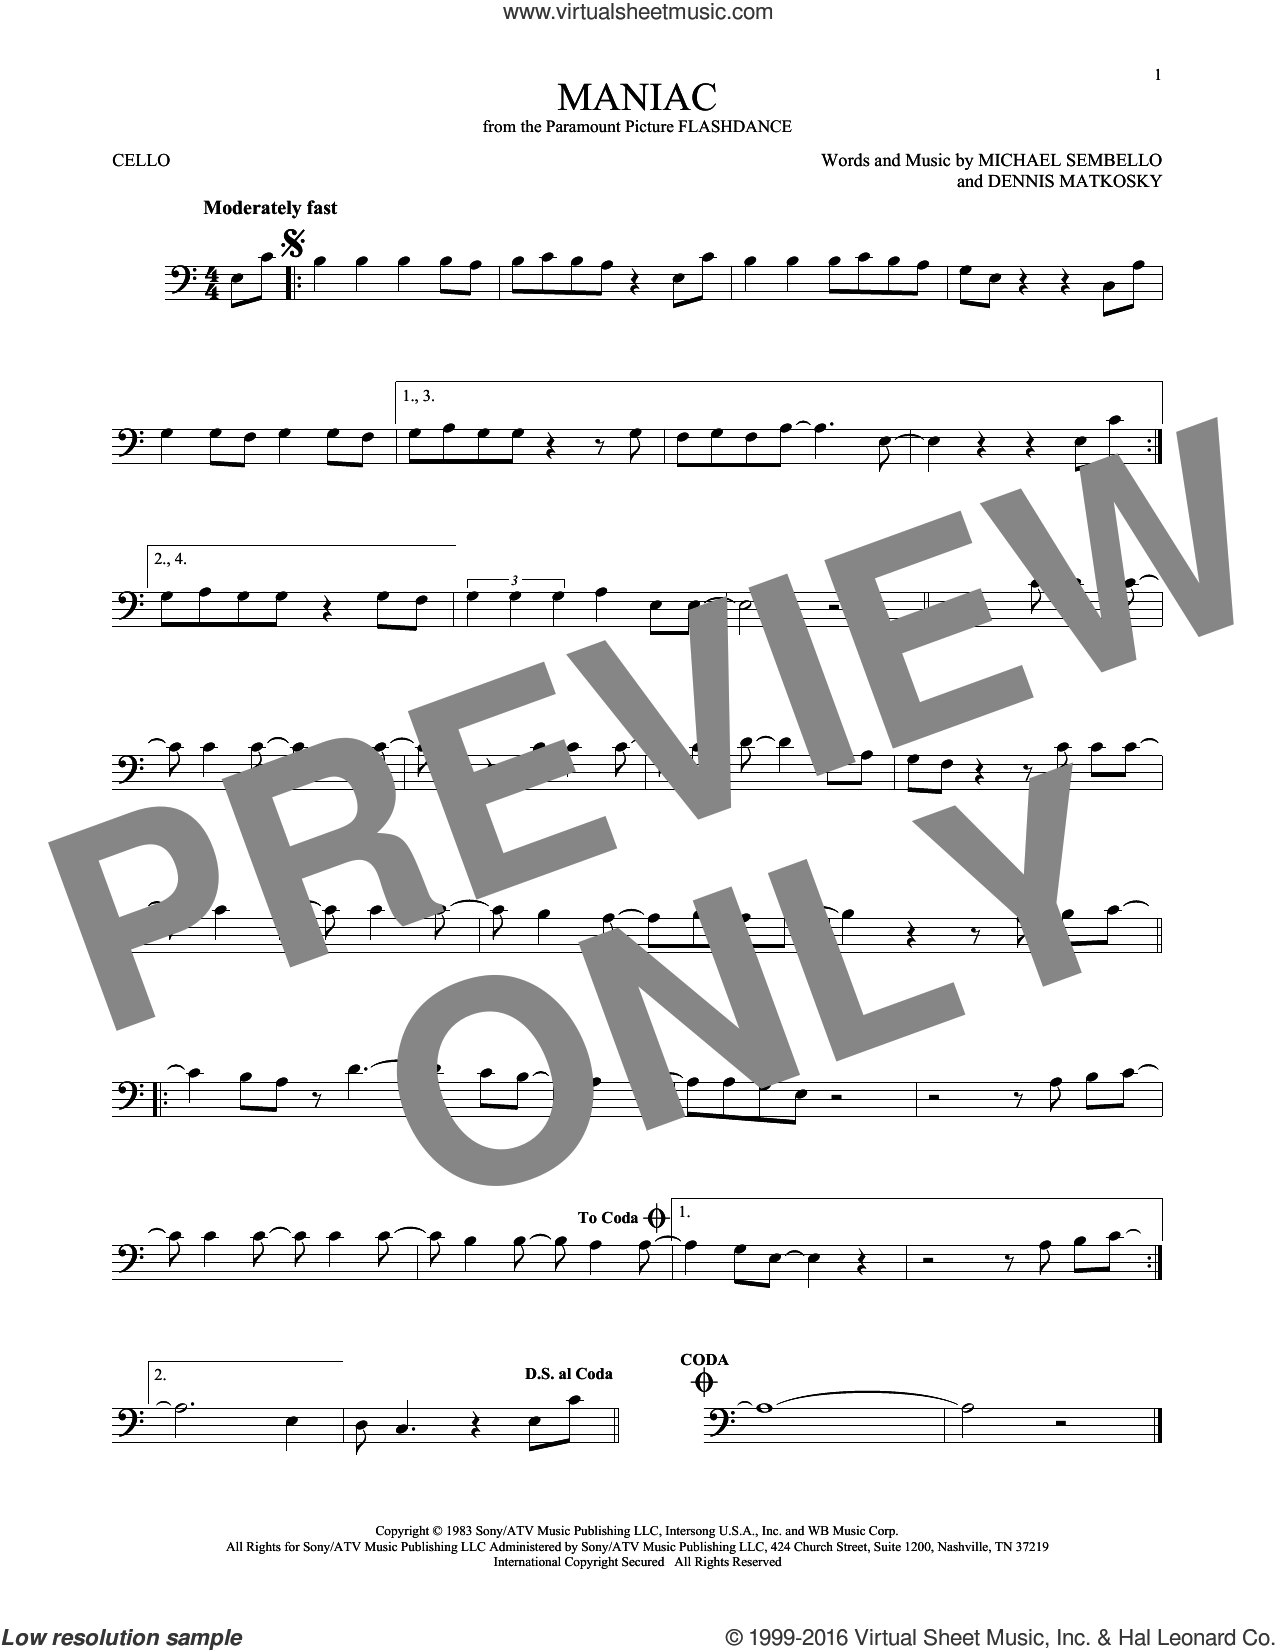 Maniac sheet music for cello solo by Michael Sembello and Dennis Matkosky, intermediate skill level